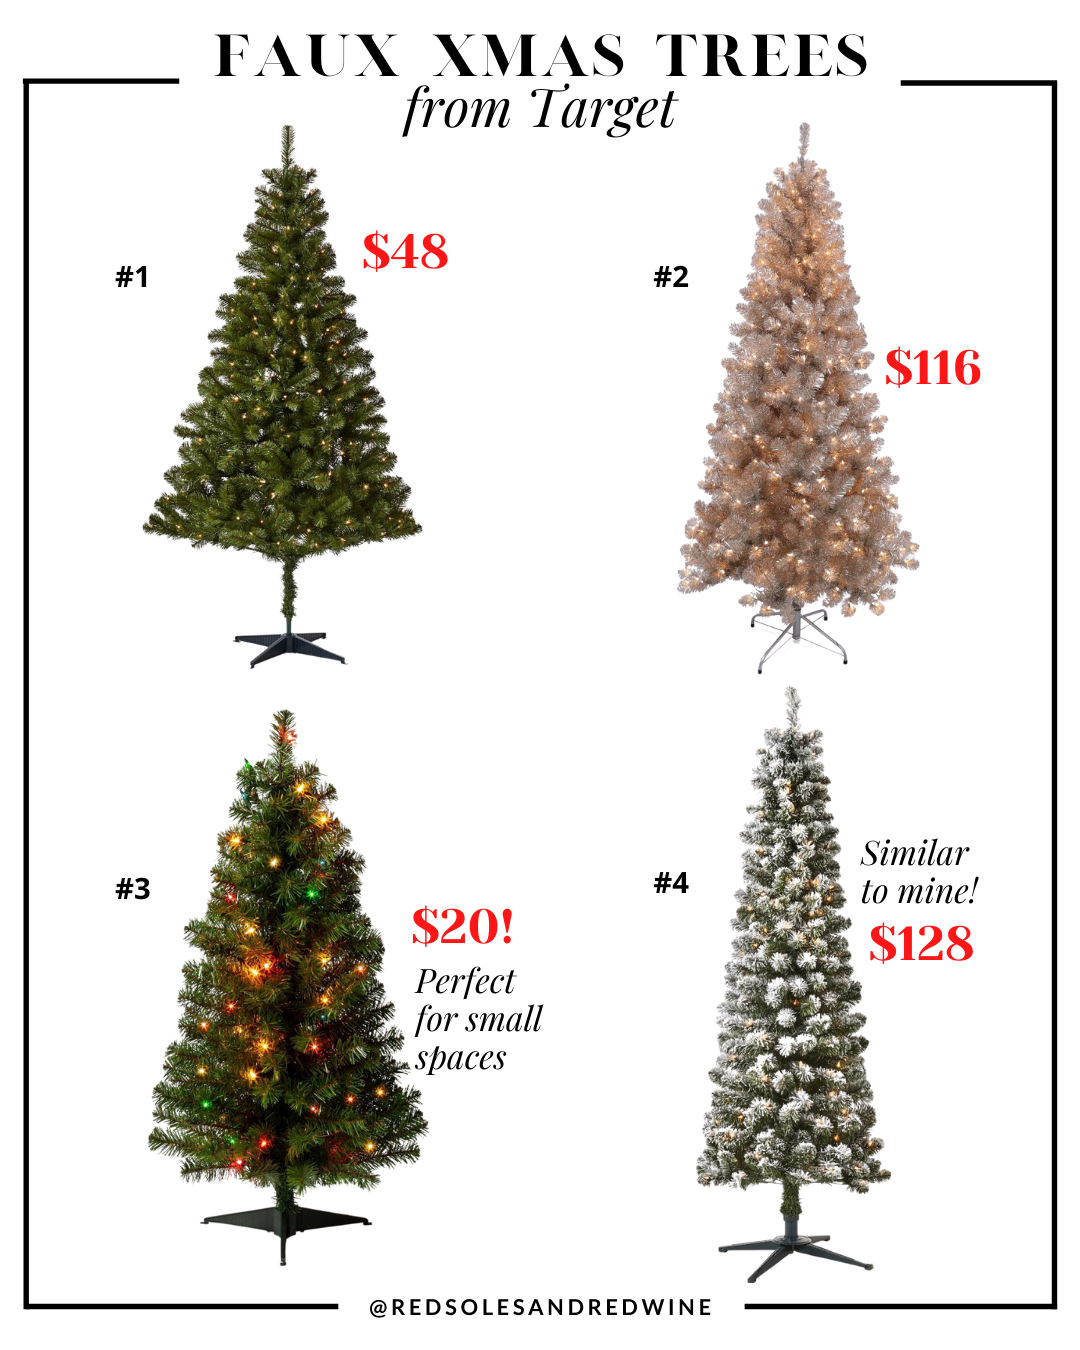 affordable artificial Christmas trees from Target, affordable artificial Christmas trees, affordable faux christmas trees, realistic looking faux christmas trees, faux xmas trees, christmas tree decorating ideas, christmas tree inspiration, faux christmas tree decor inspiration, holiday decor, Red Soles and Red Wine, Jennifer Worman